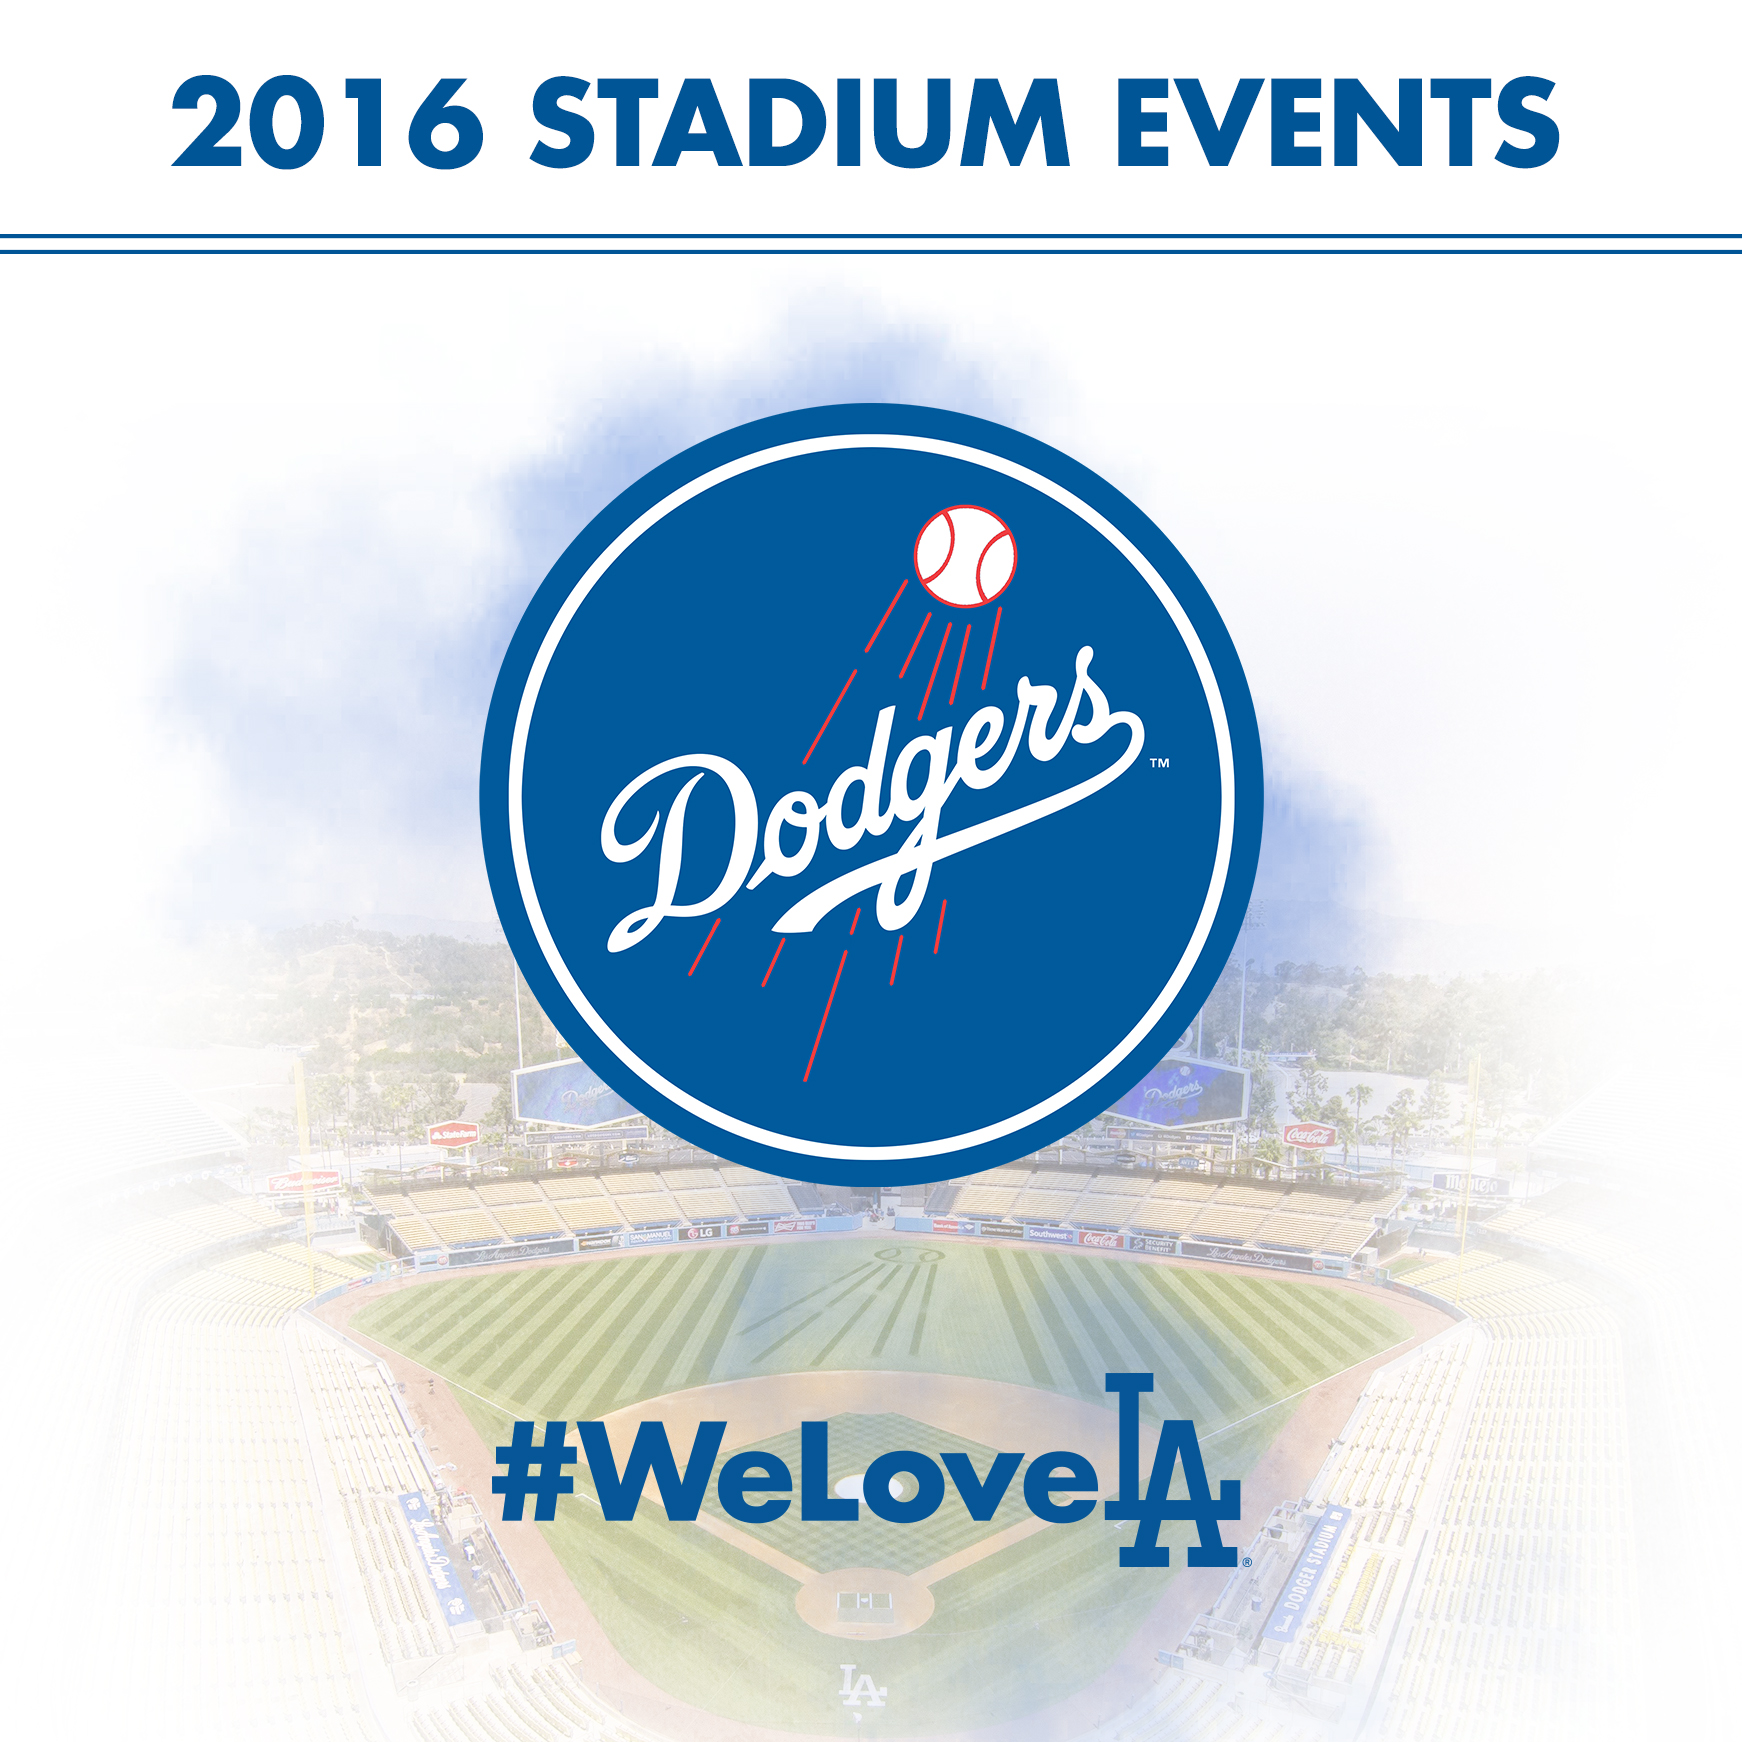 2016 Stadium Events